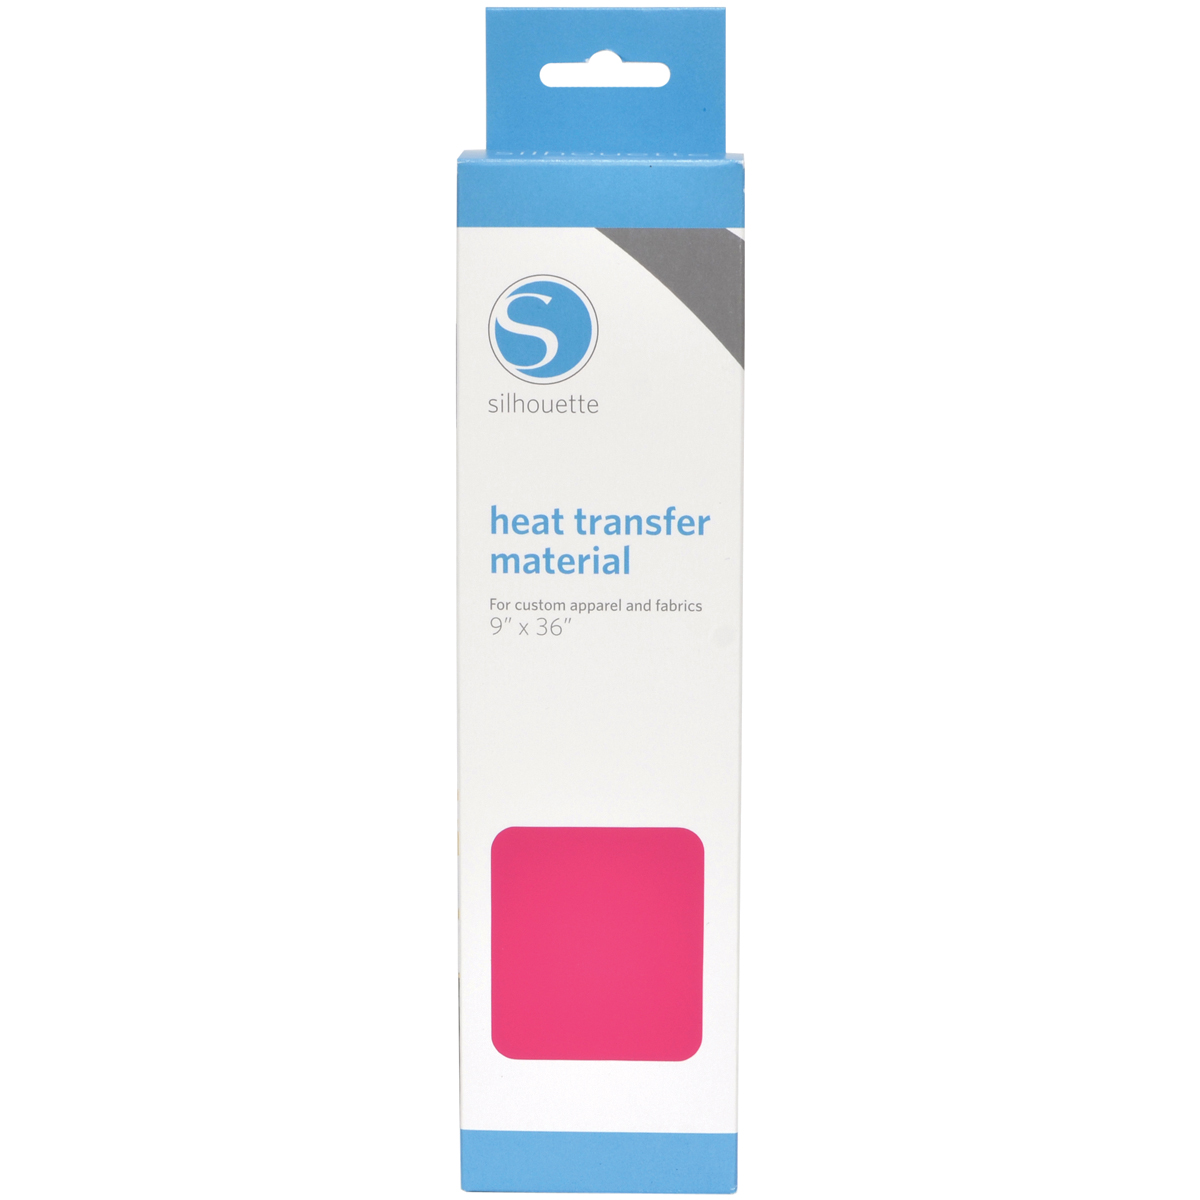 Silhouette Smooth Heat Transfer Material 9